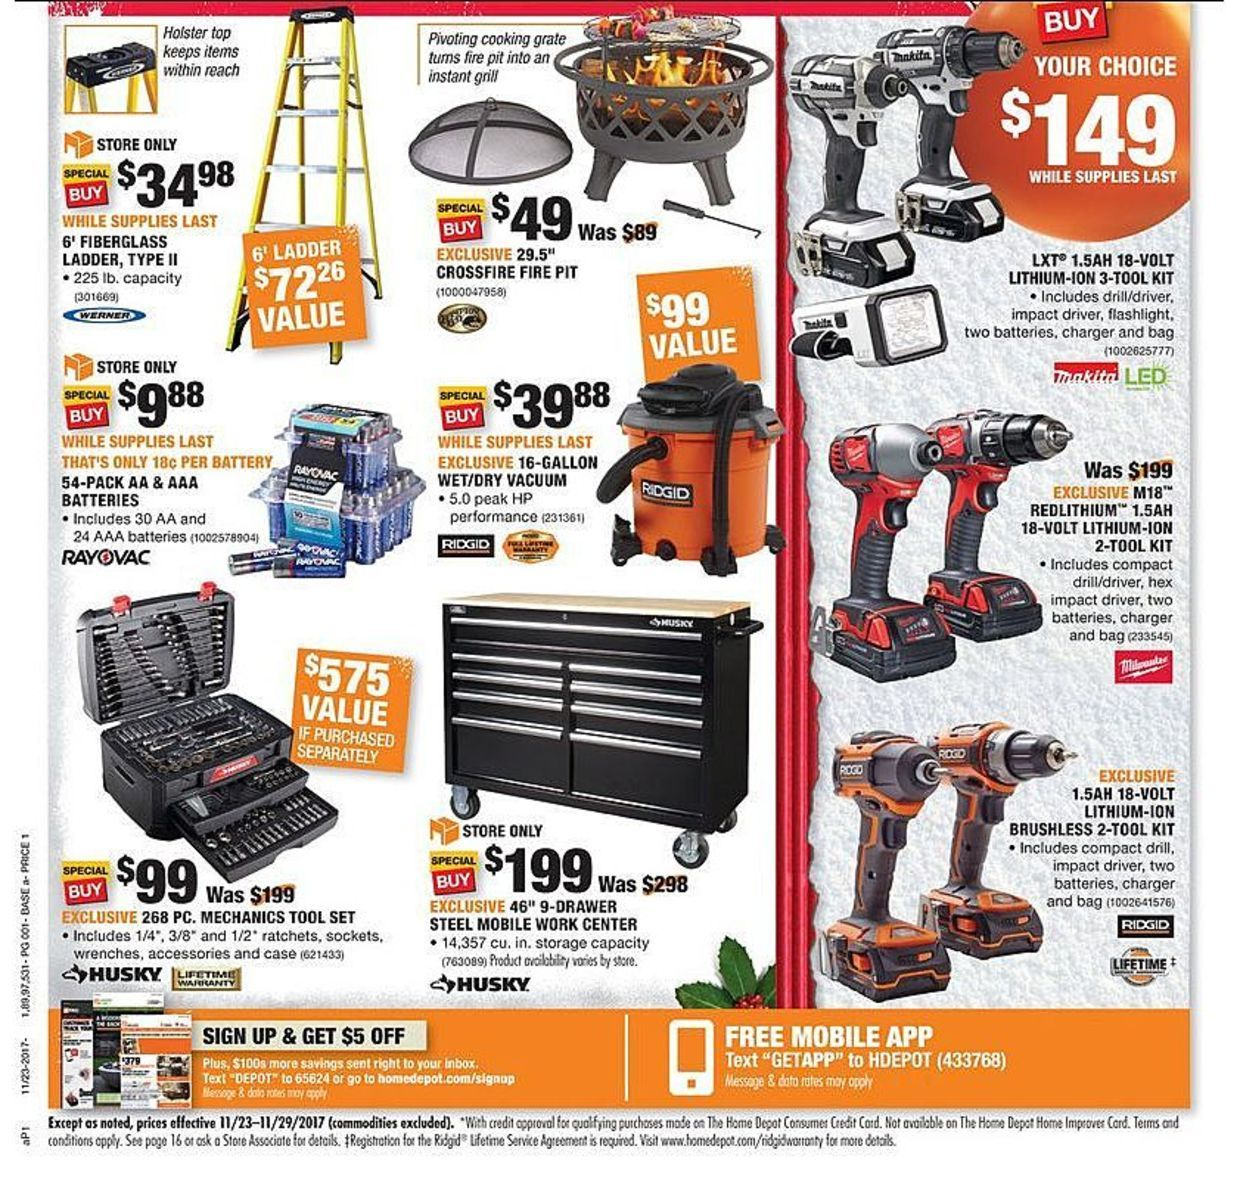 Home Depot Black Friday 2017 Ads And Deals As Usual Home Depot Is One Of The Best Black Friday Sales For Huge Discounts On Major Appliances Home Improvement